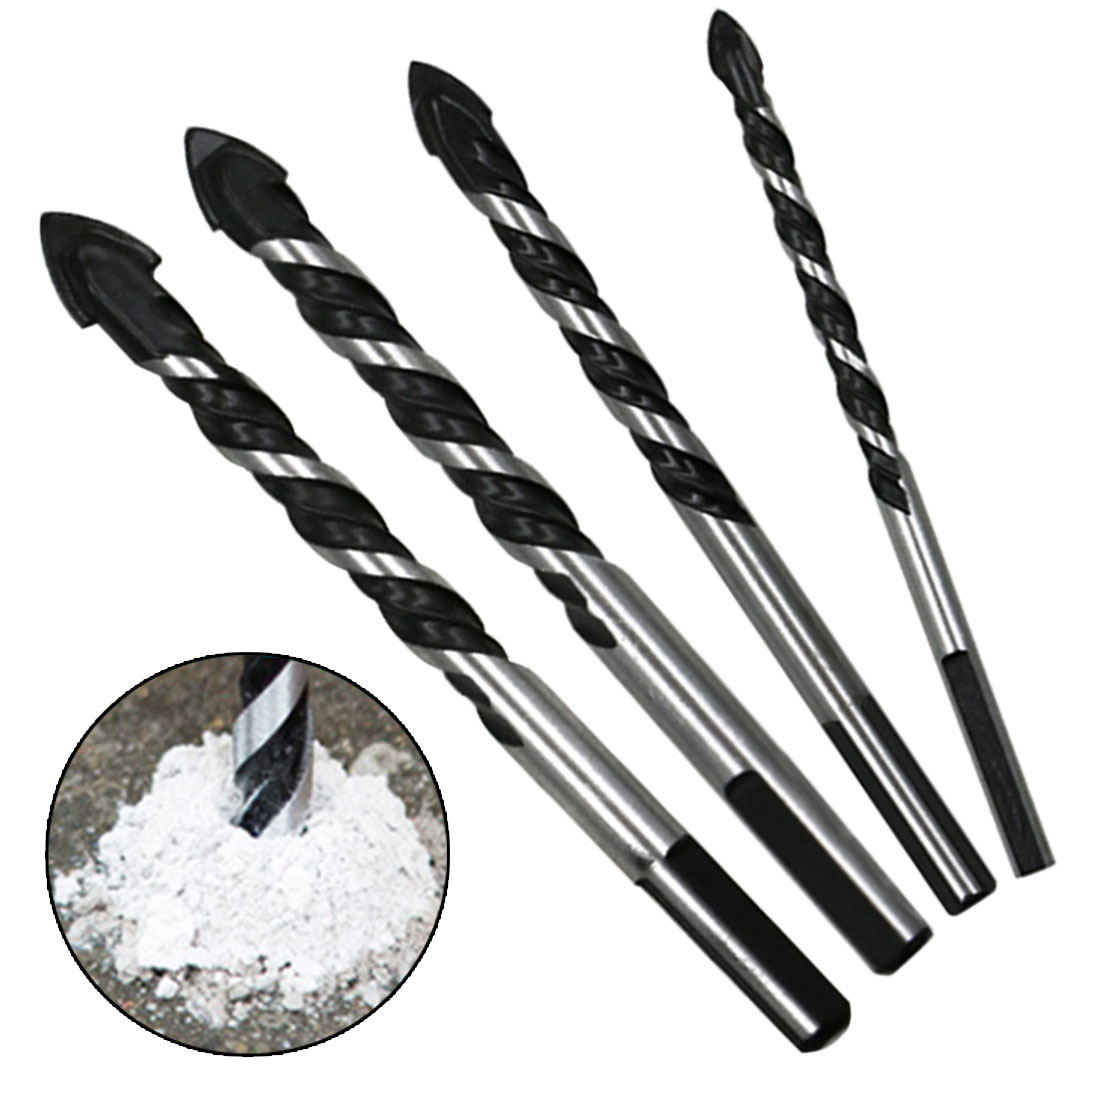 6-12mm Glass Drill Bit Twist Spade Drill Triangle Bits For Concrete Marble Multifunctional Ceramic Tile Opener